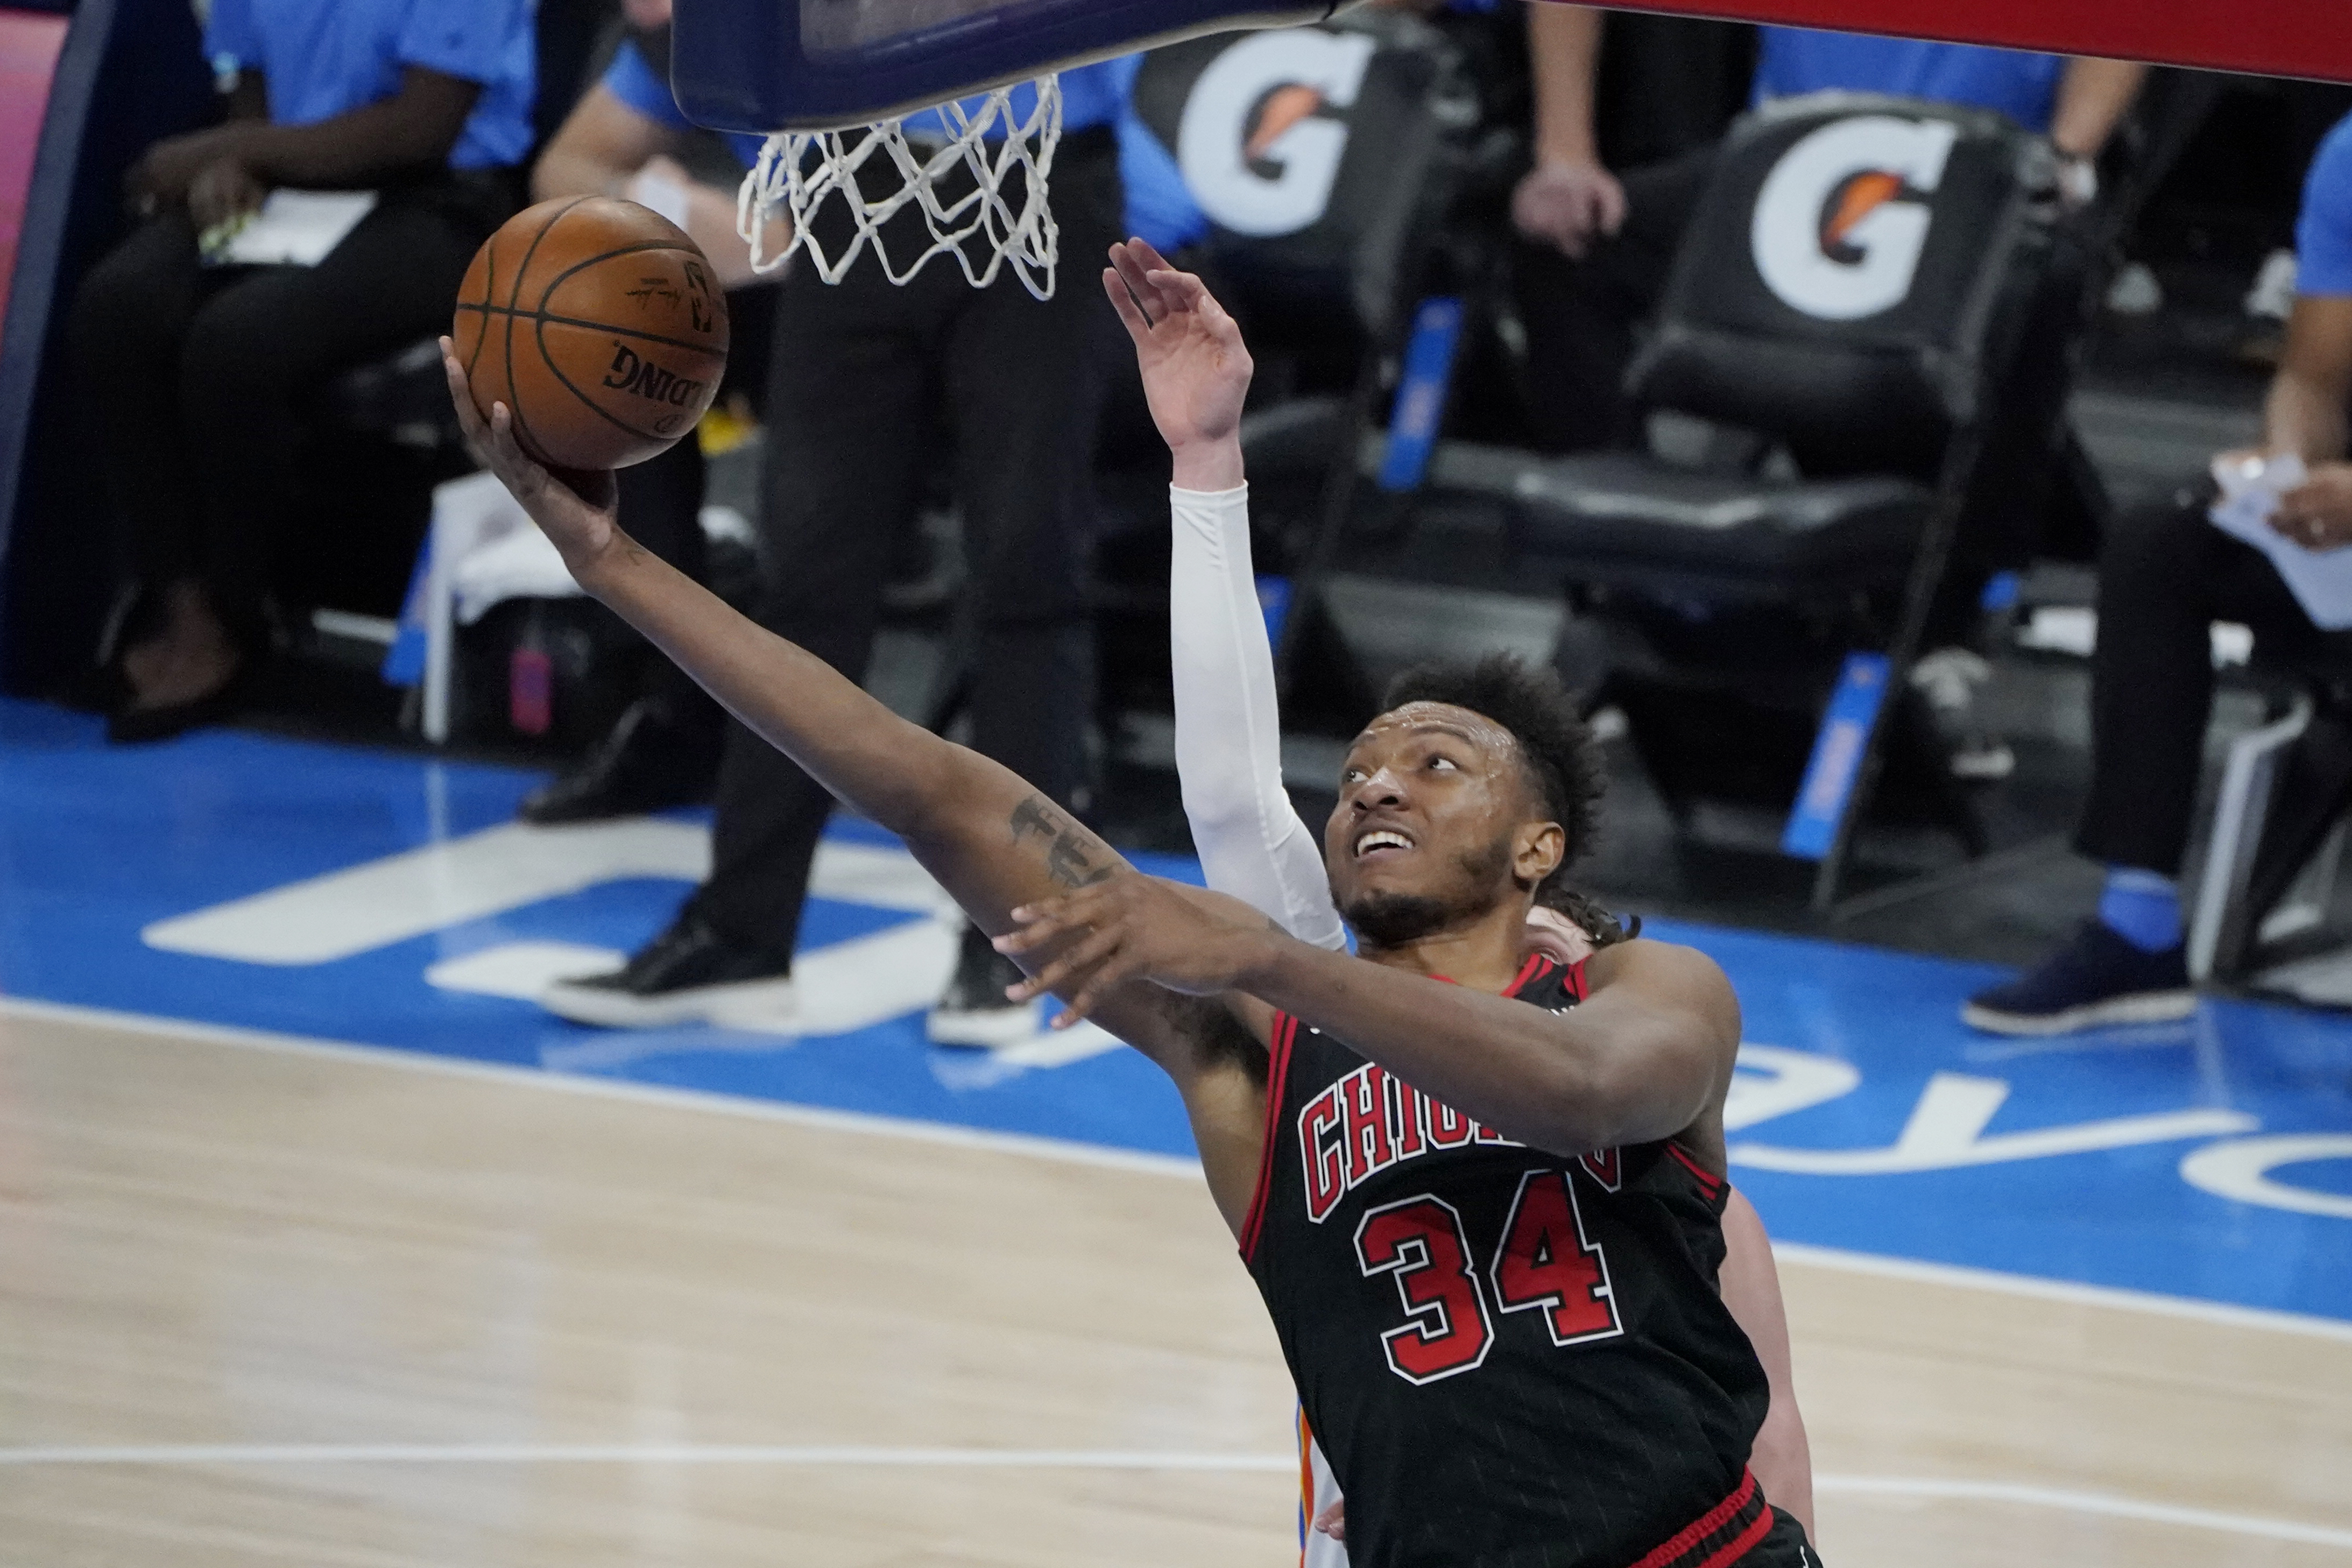 The Bulls thought the postponement of Wednesday's game against the Hornets meant Wendell Carter Jr. would get some much-needed practice time. Instead they'll play the Pistons.